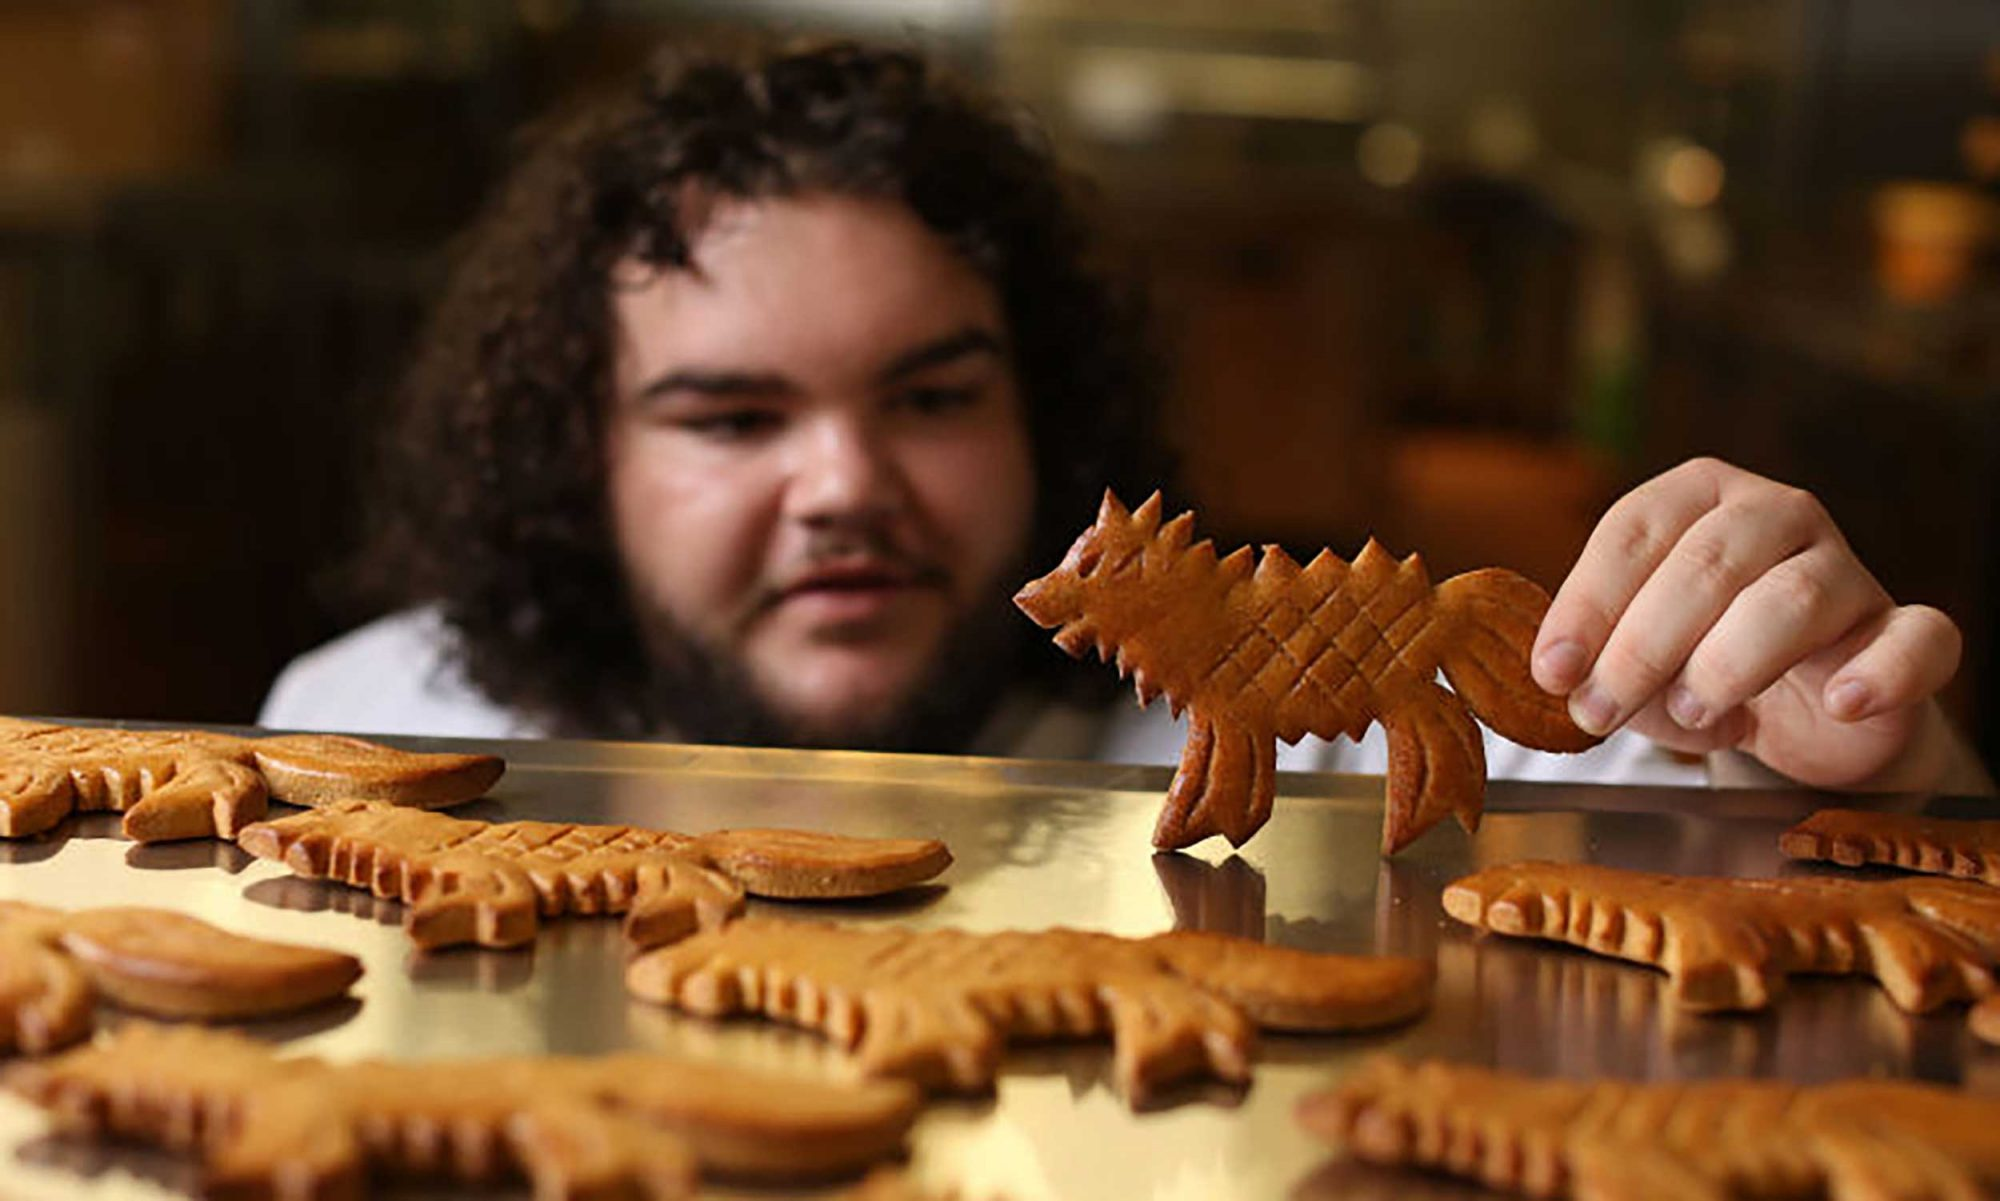 EC: 'Game of Thrones' Actor Opens His Own London Bakery